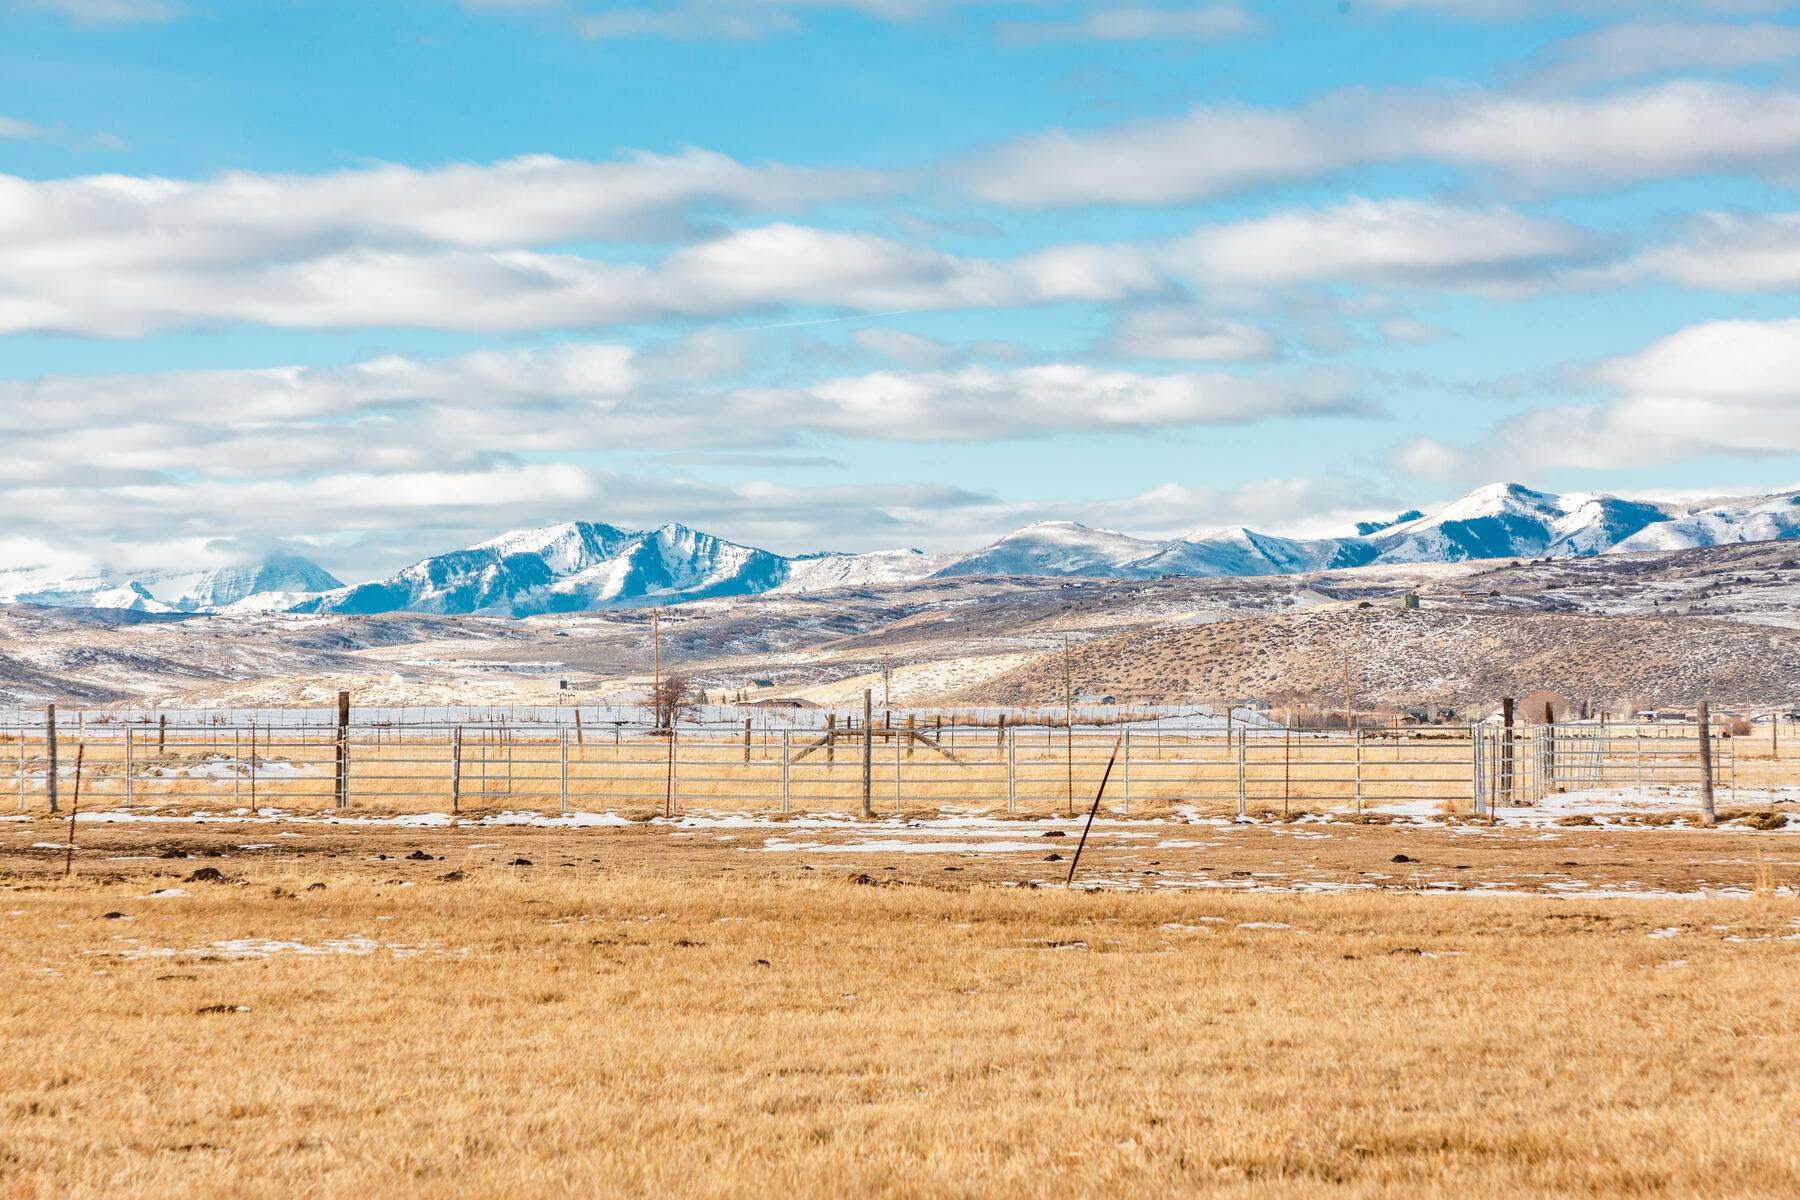 Land for Sale at Build Your Family's Legacy Home on This Homesite Nestled in the Kamas Valley 512 W Simpson Lane Kamas, Utah 84036 United States